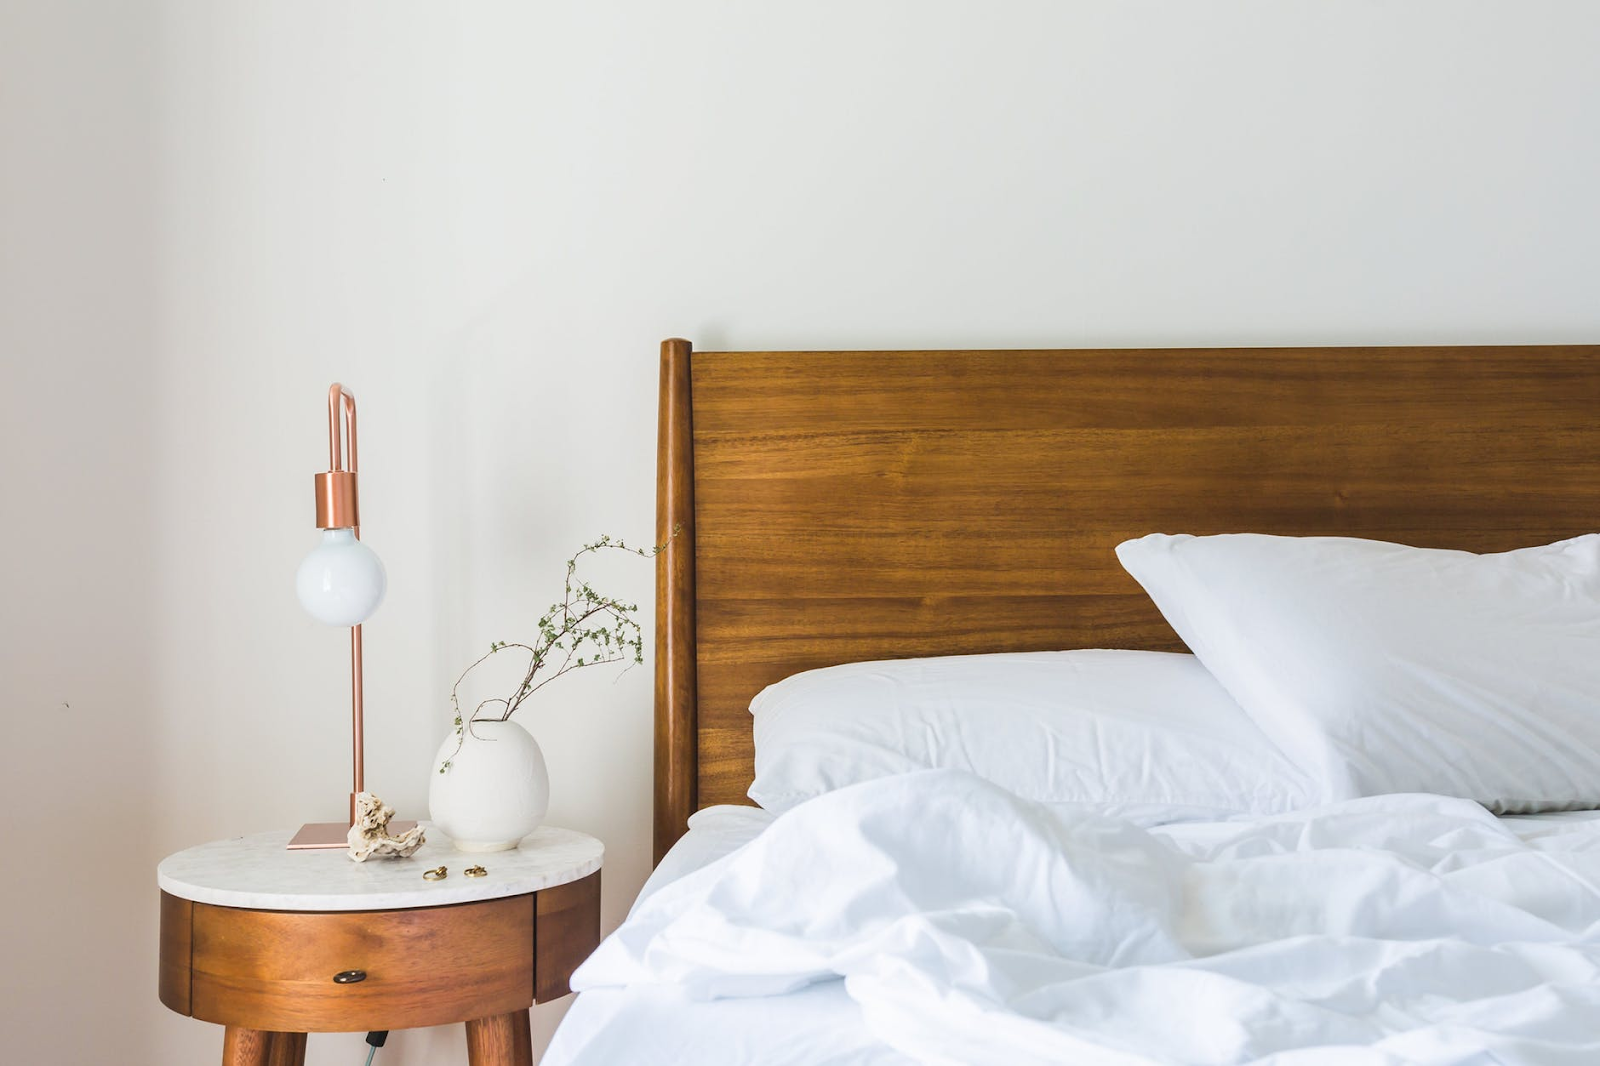 A bed with a natural headboard and a thick rumpled comforter